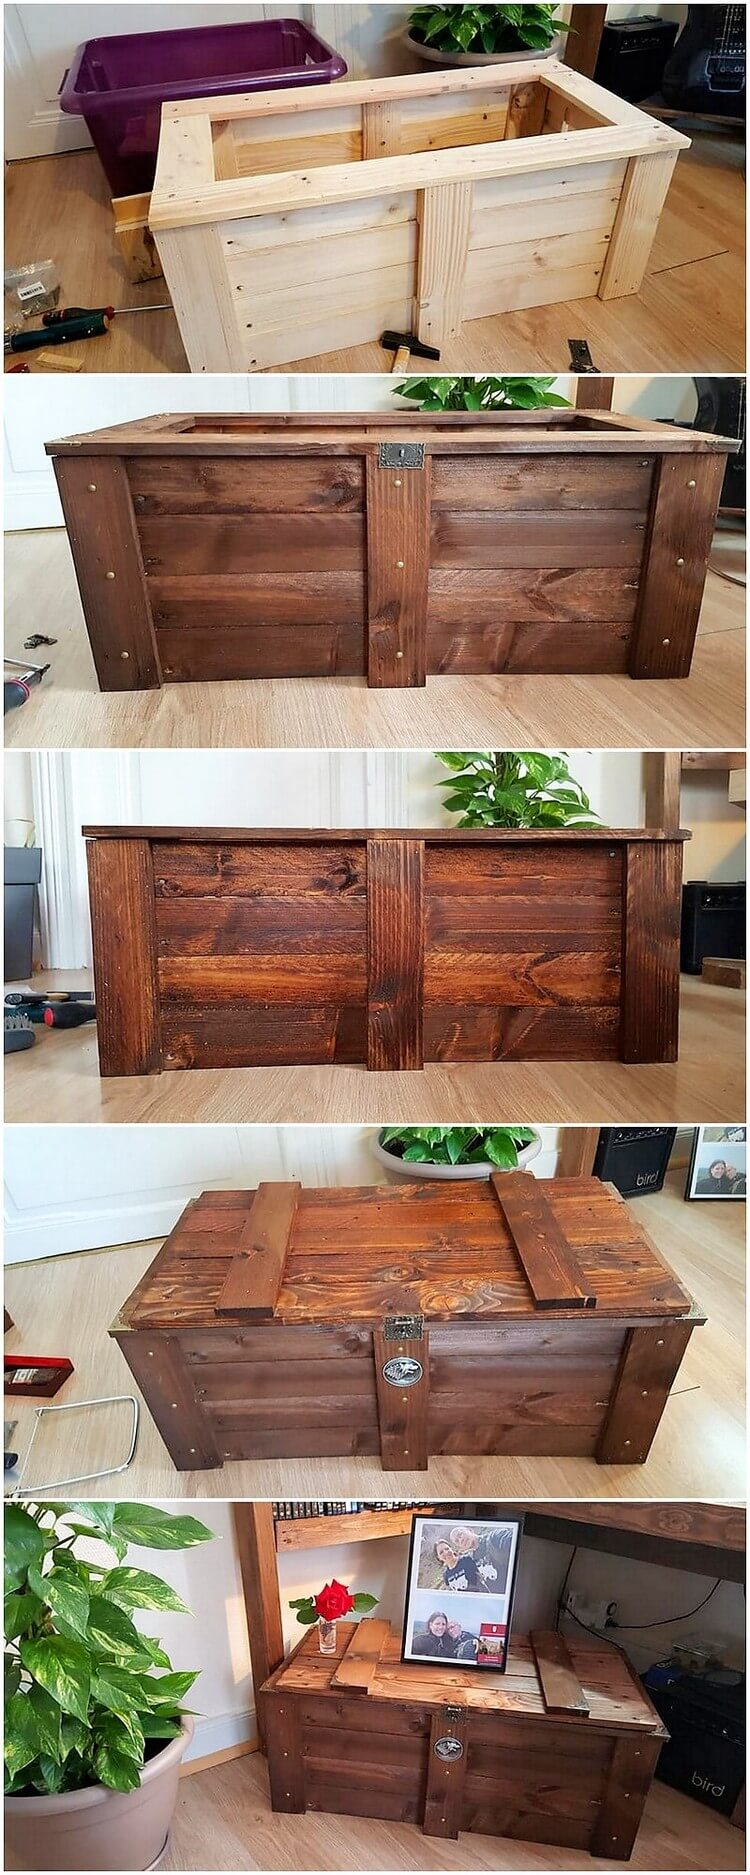 Pallet Hope Chest or Storage Box